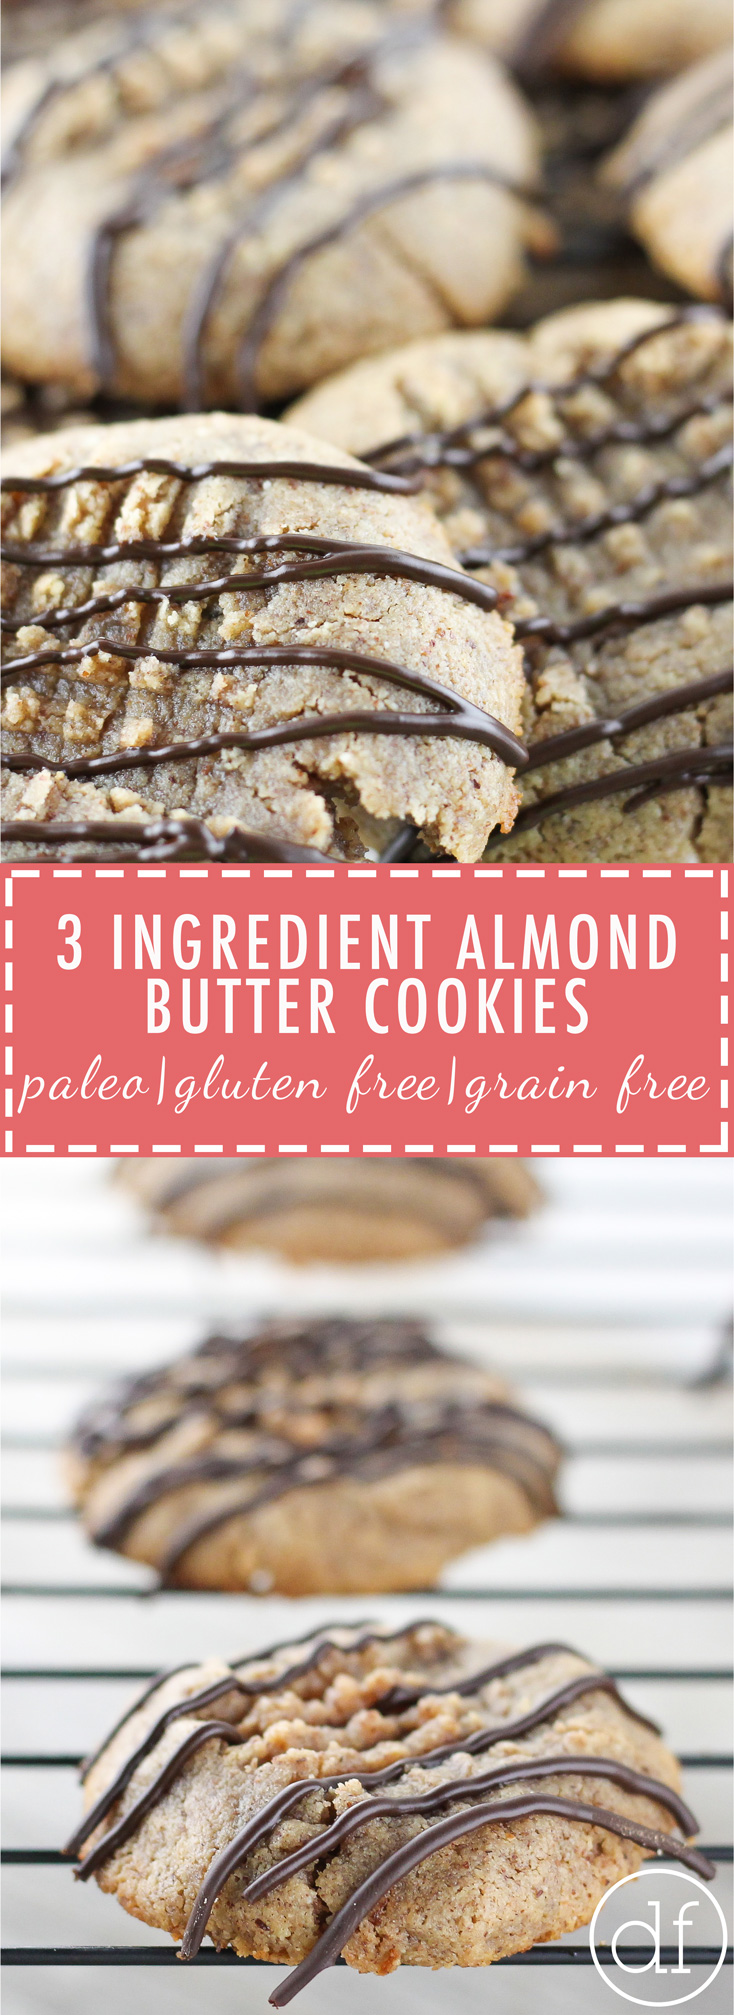 Paleo, Paleo Cookies, Easy, Simple, Christmas Cookies, Paleo Christmas Cookies, Almond Butter, Grain Free, Gluten Free, Dairy Free, Define Fettle